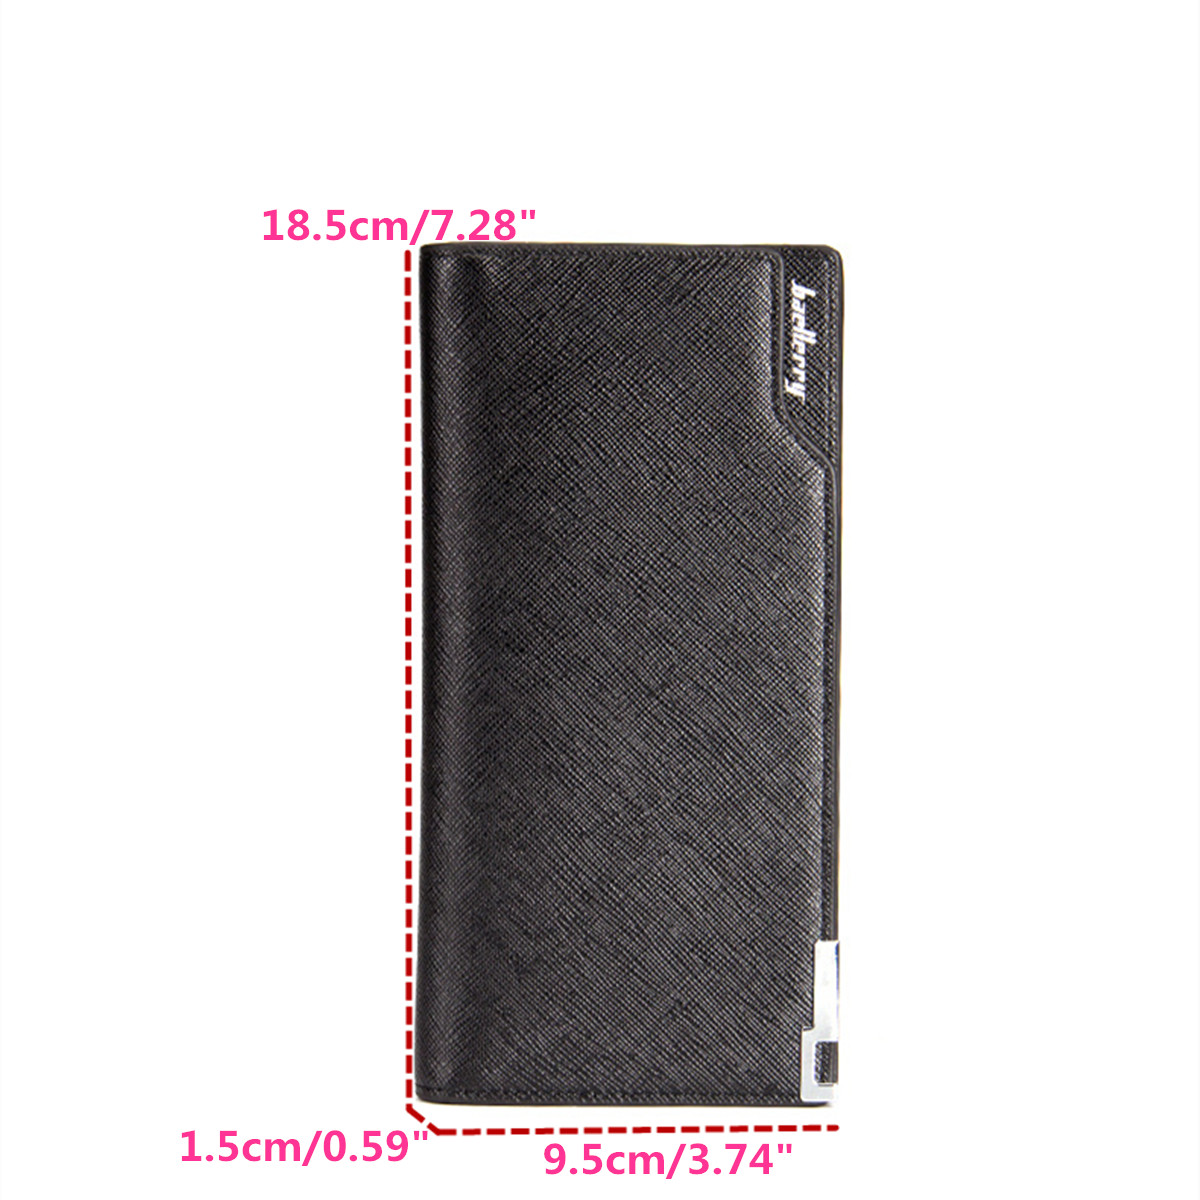 Multifunctional Fashion PU Leather Men's Wallet Purse Card Holder Phone Bag Case for iPhone Samsung